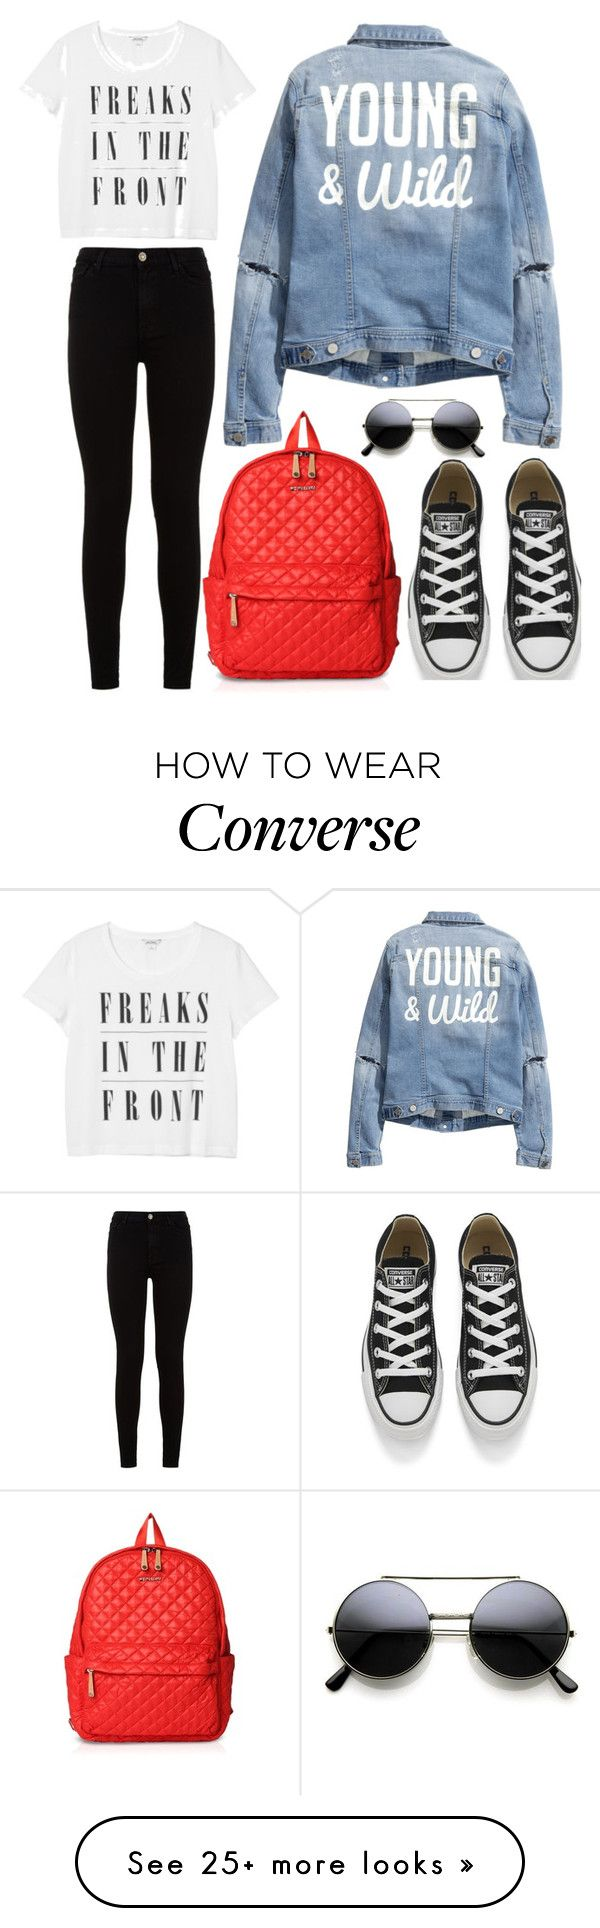 """""""#811"""" by infinito01 on Polyvore featuring Monki, H&M, 7 For All Mankind, M Z Wallace and Converse"""